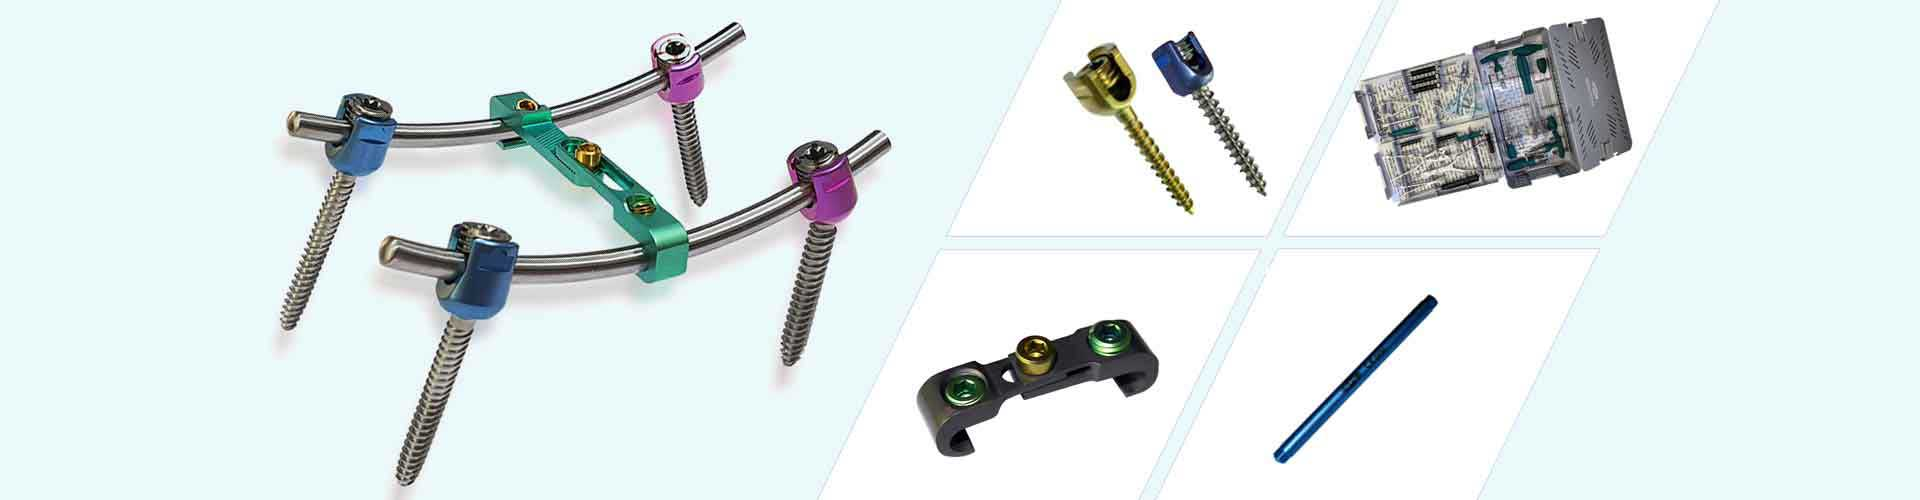 spineHEAL - The Pedicle Screw System